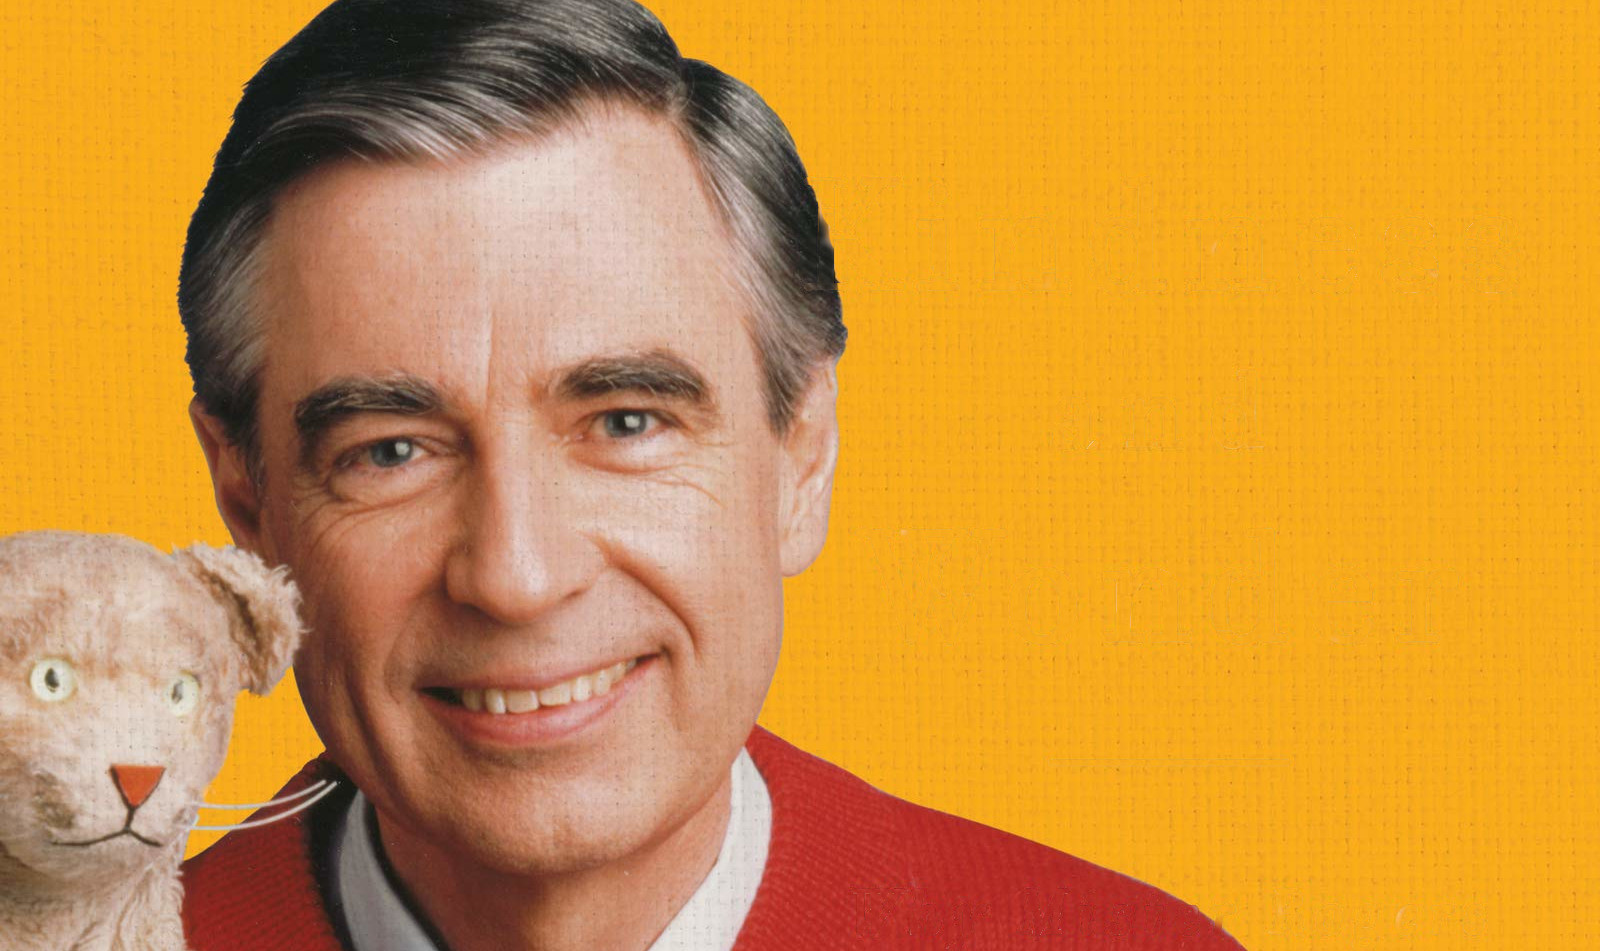 Kindness And Wonder Mr Rogers Biography Is A Study In Empathy And A Deep Genuine Love For Children Boing Boing